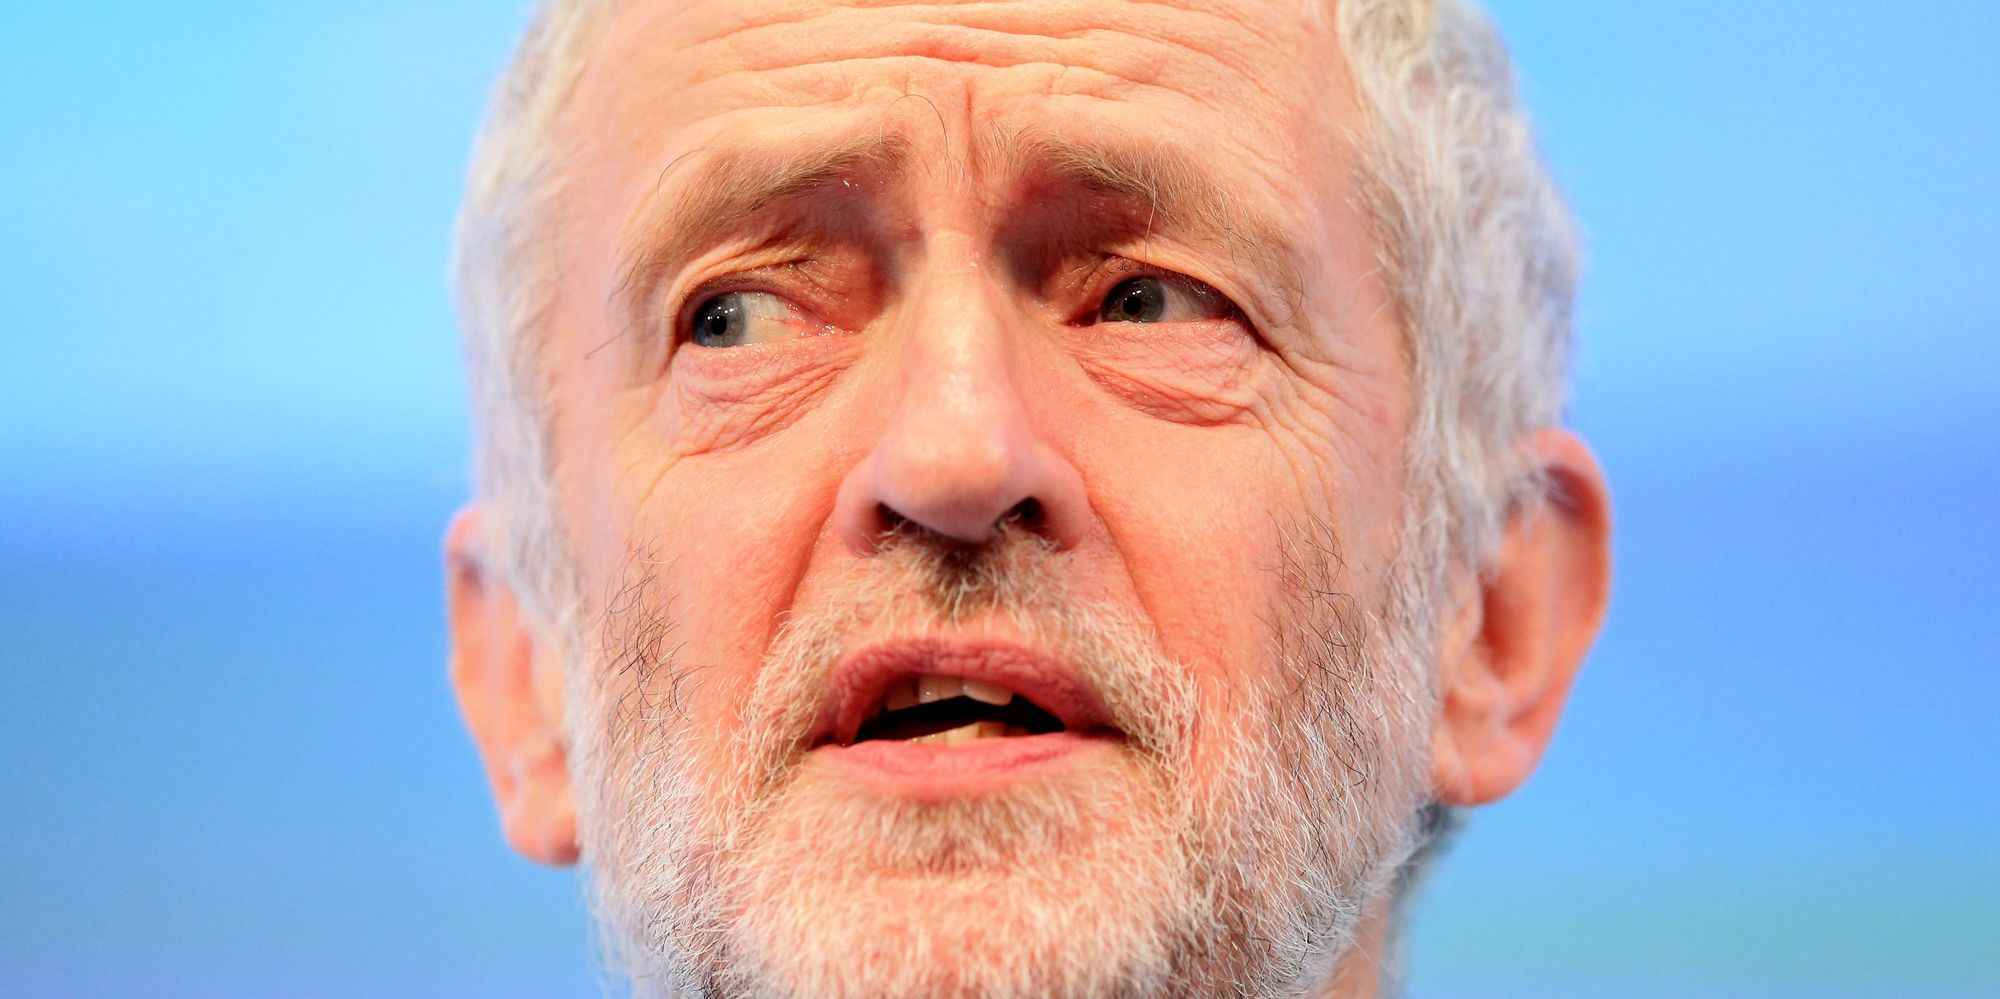 Jeremy Corbyn Wants UK To 'Ratchet Down' Military Tensions With Vladimir Putin In Eastern Europe